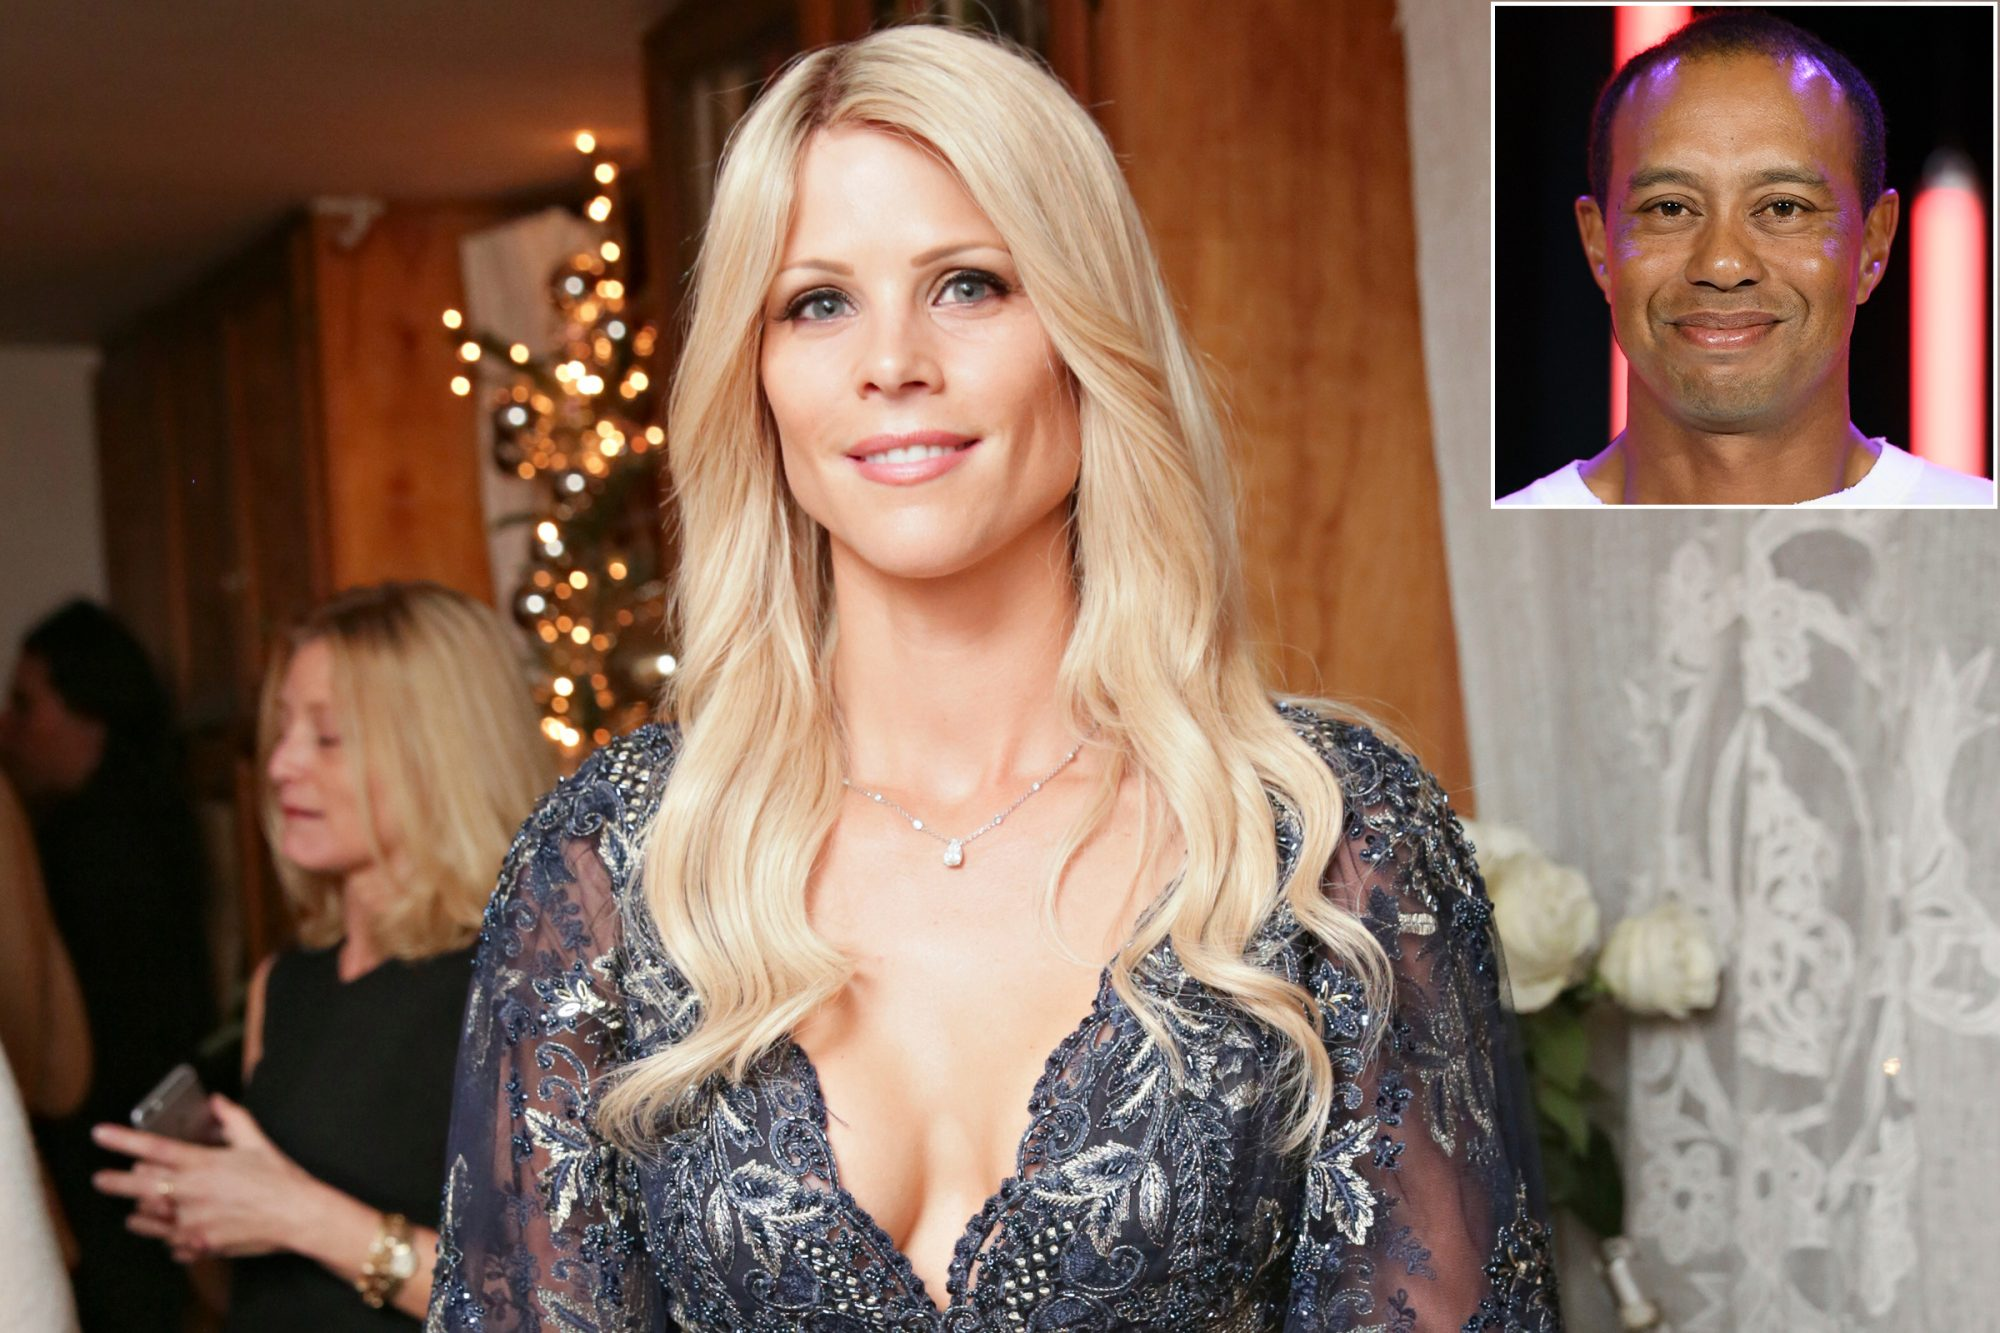 Tiger Woods ex-wife Elin Nordegren- Things to know about